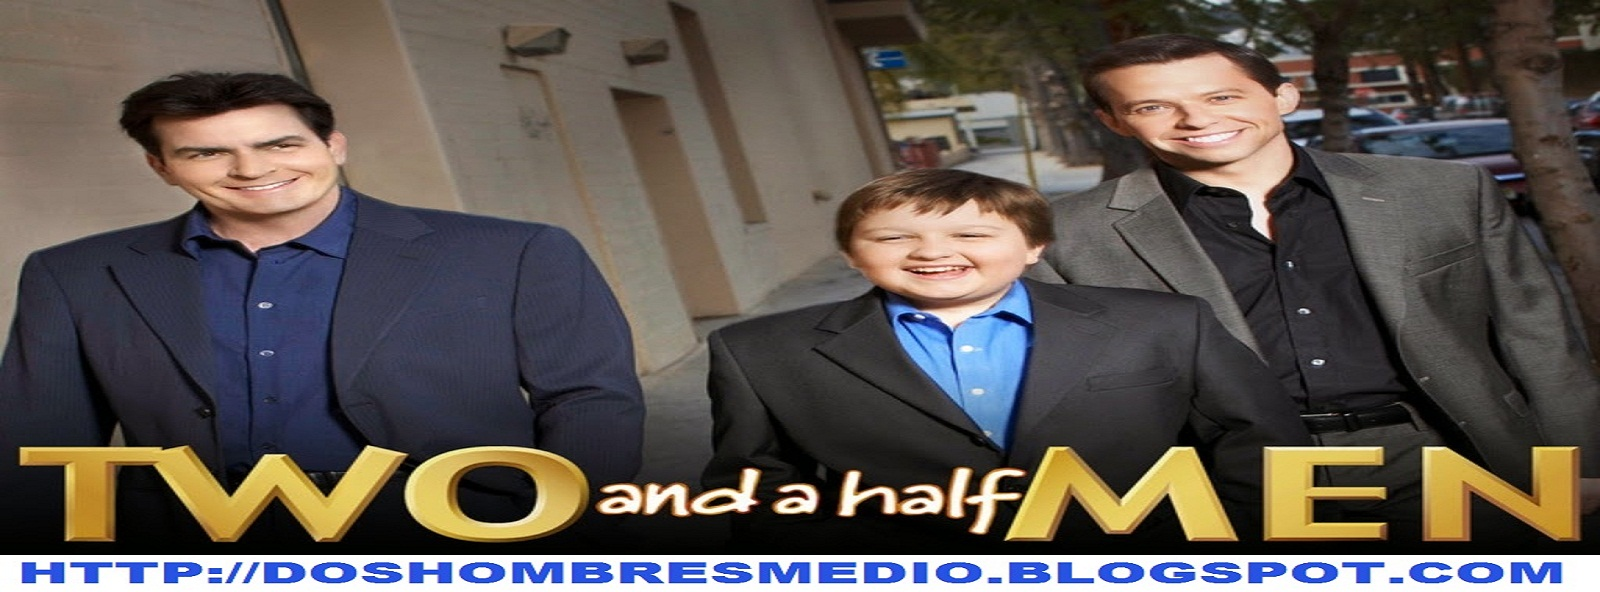 Dos Hombres y Medio - Audio Latino Online [Two And a Half Men]